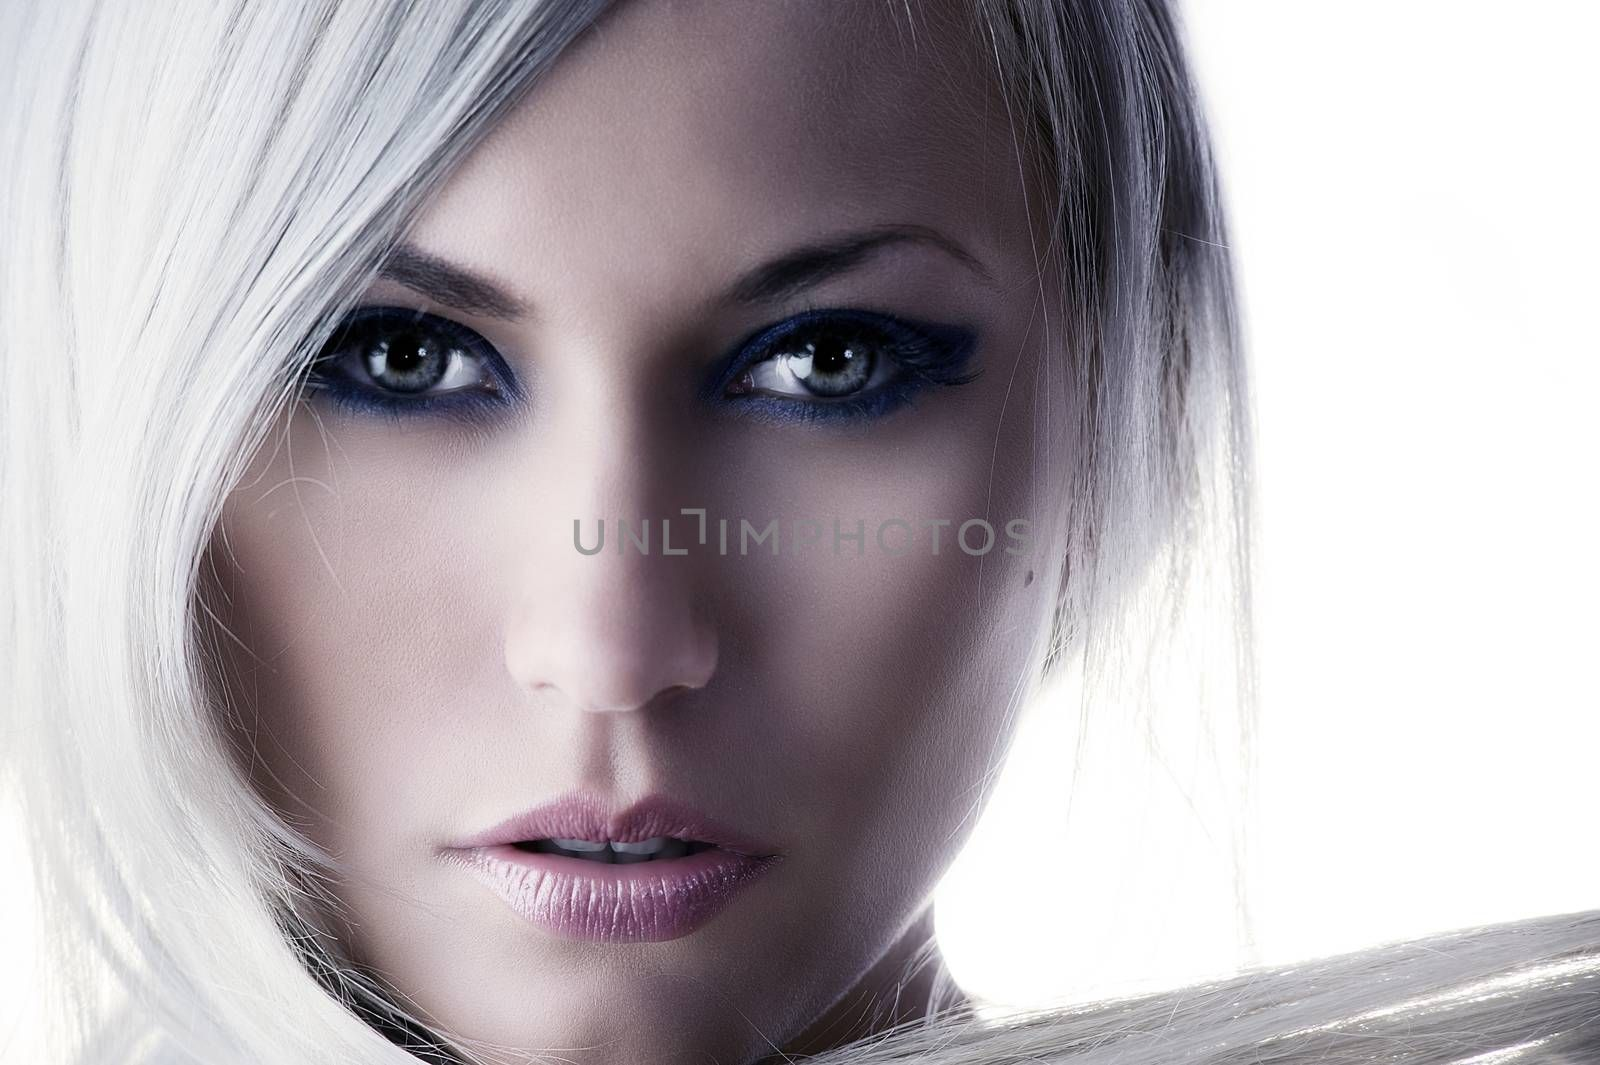 beauty portrait of a cute blond girl with long hair and forced color